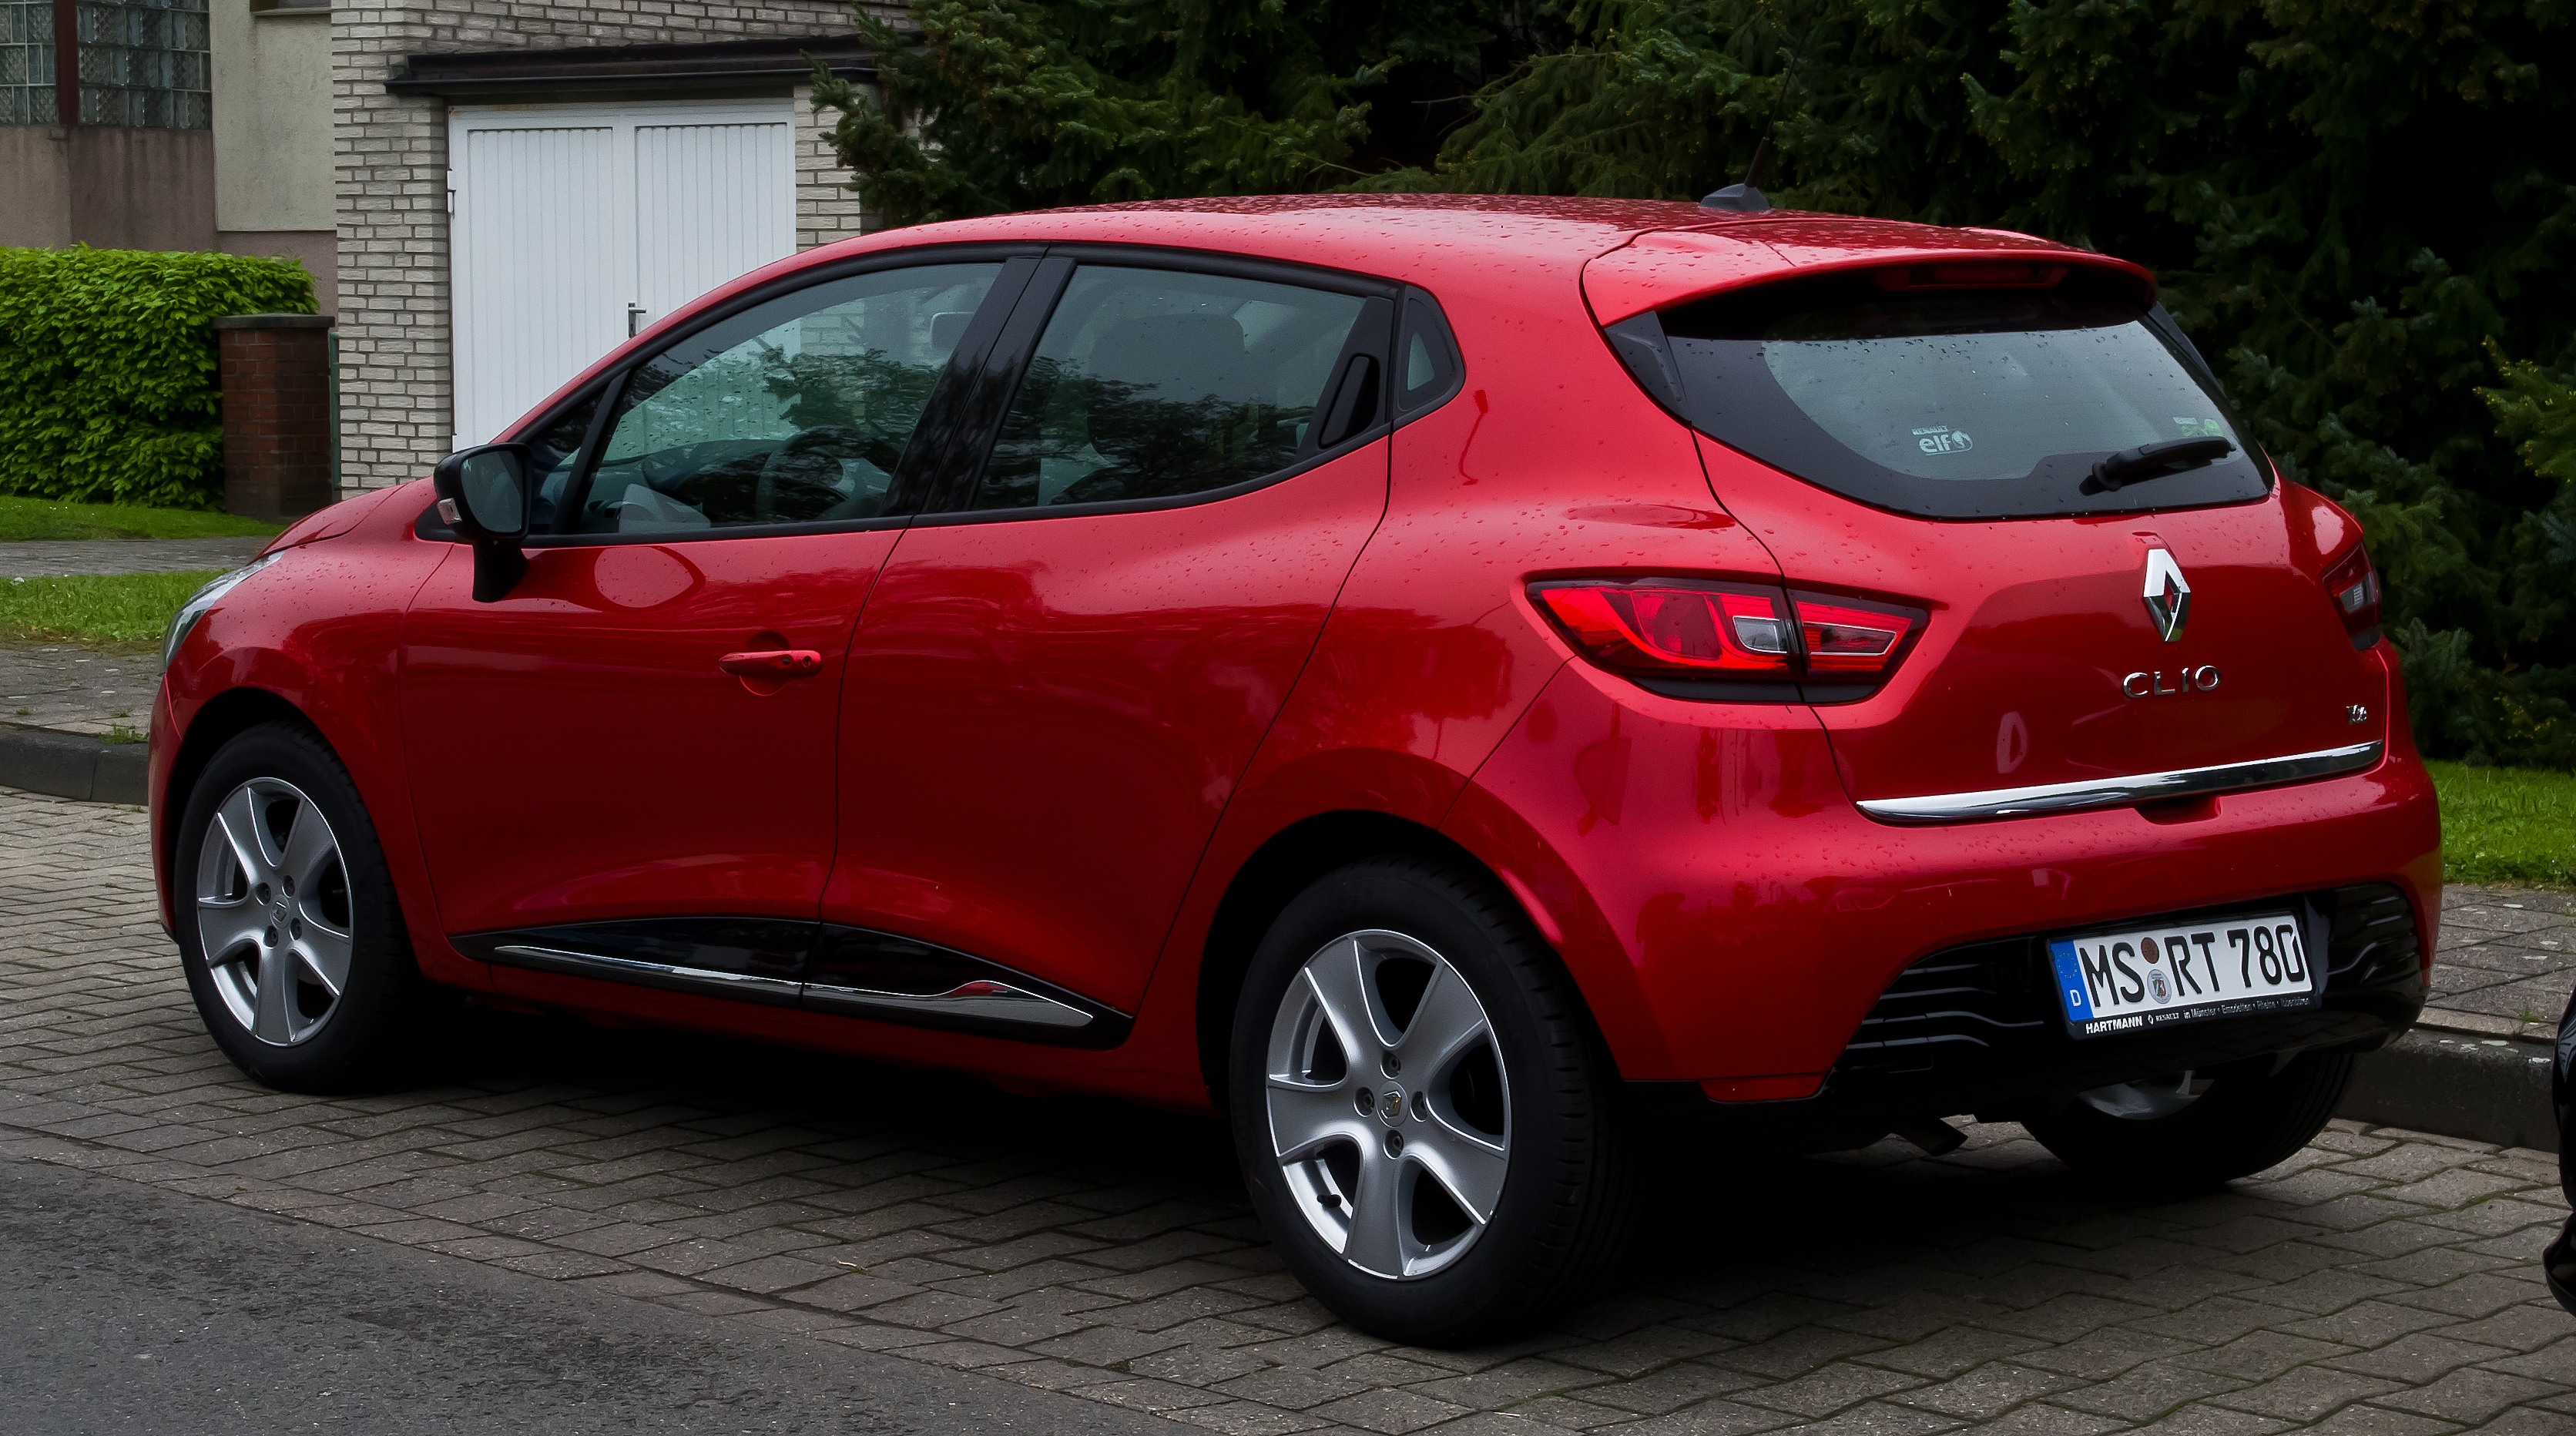 Renault Clio   pictures, information and specs - Auto-Database.com